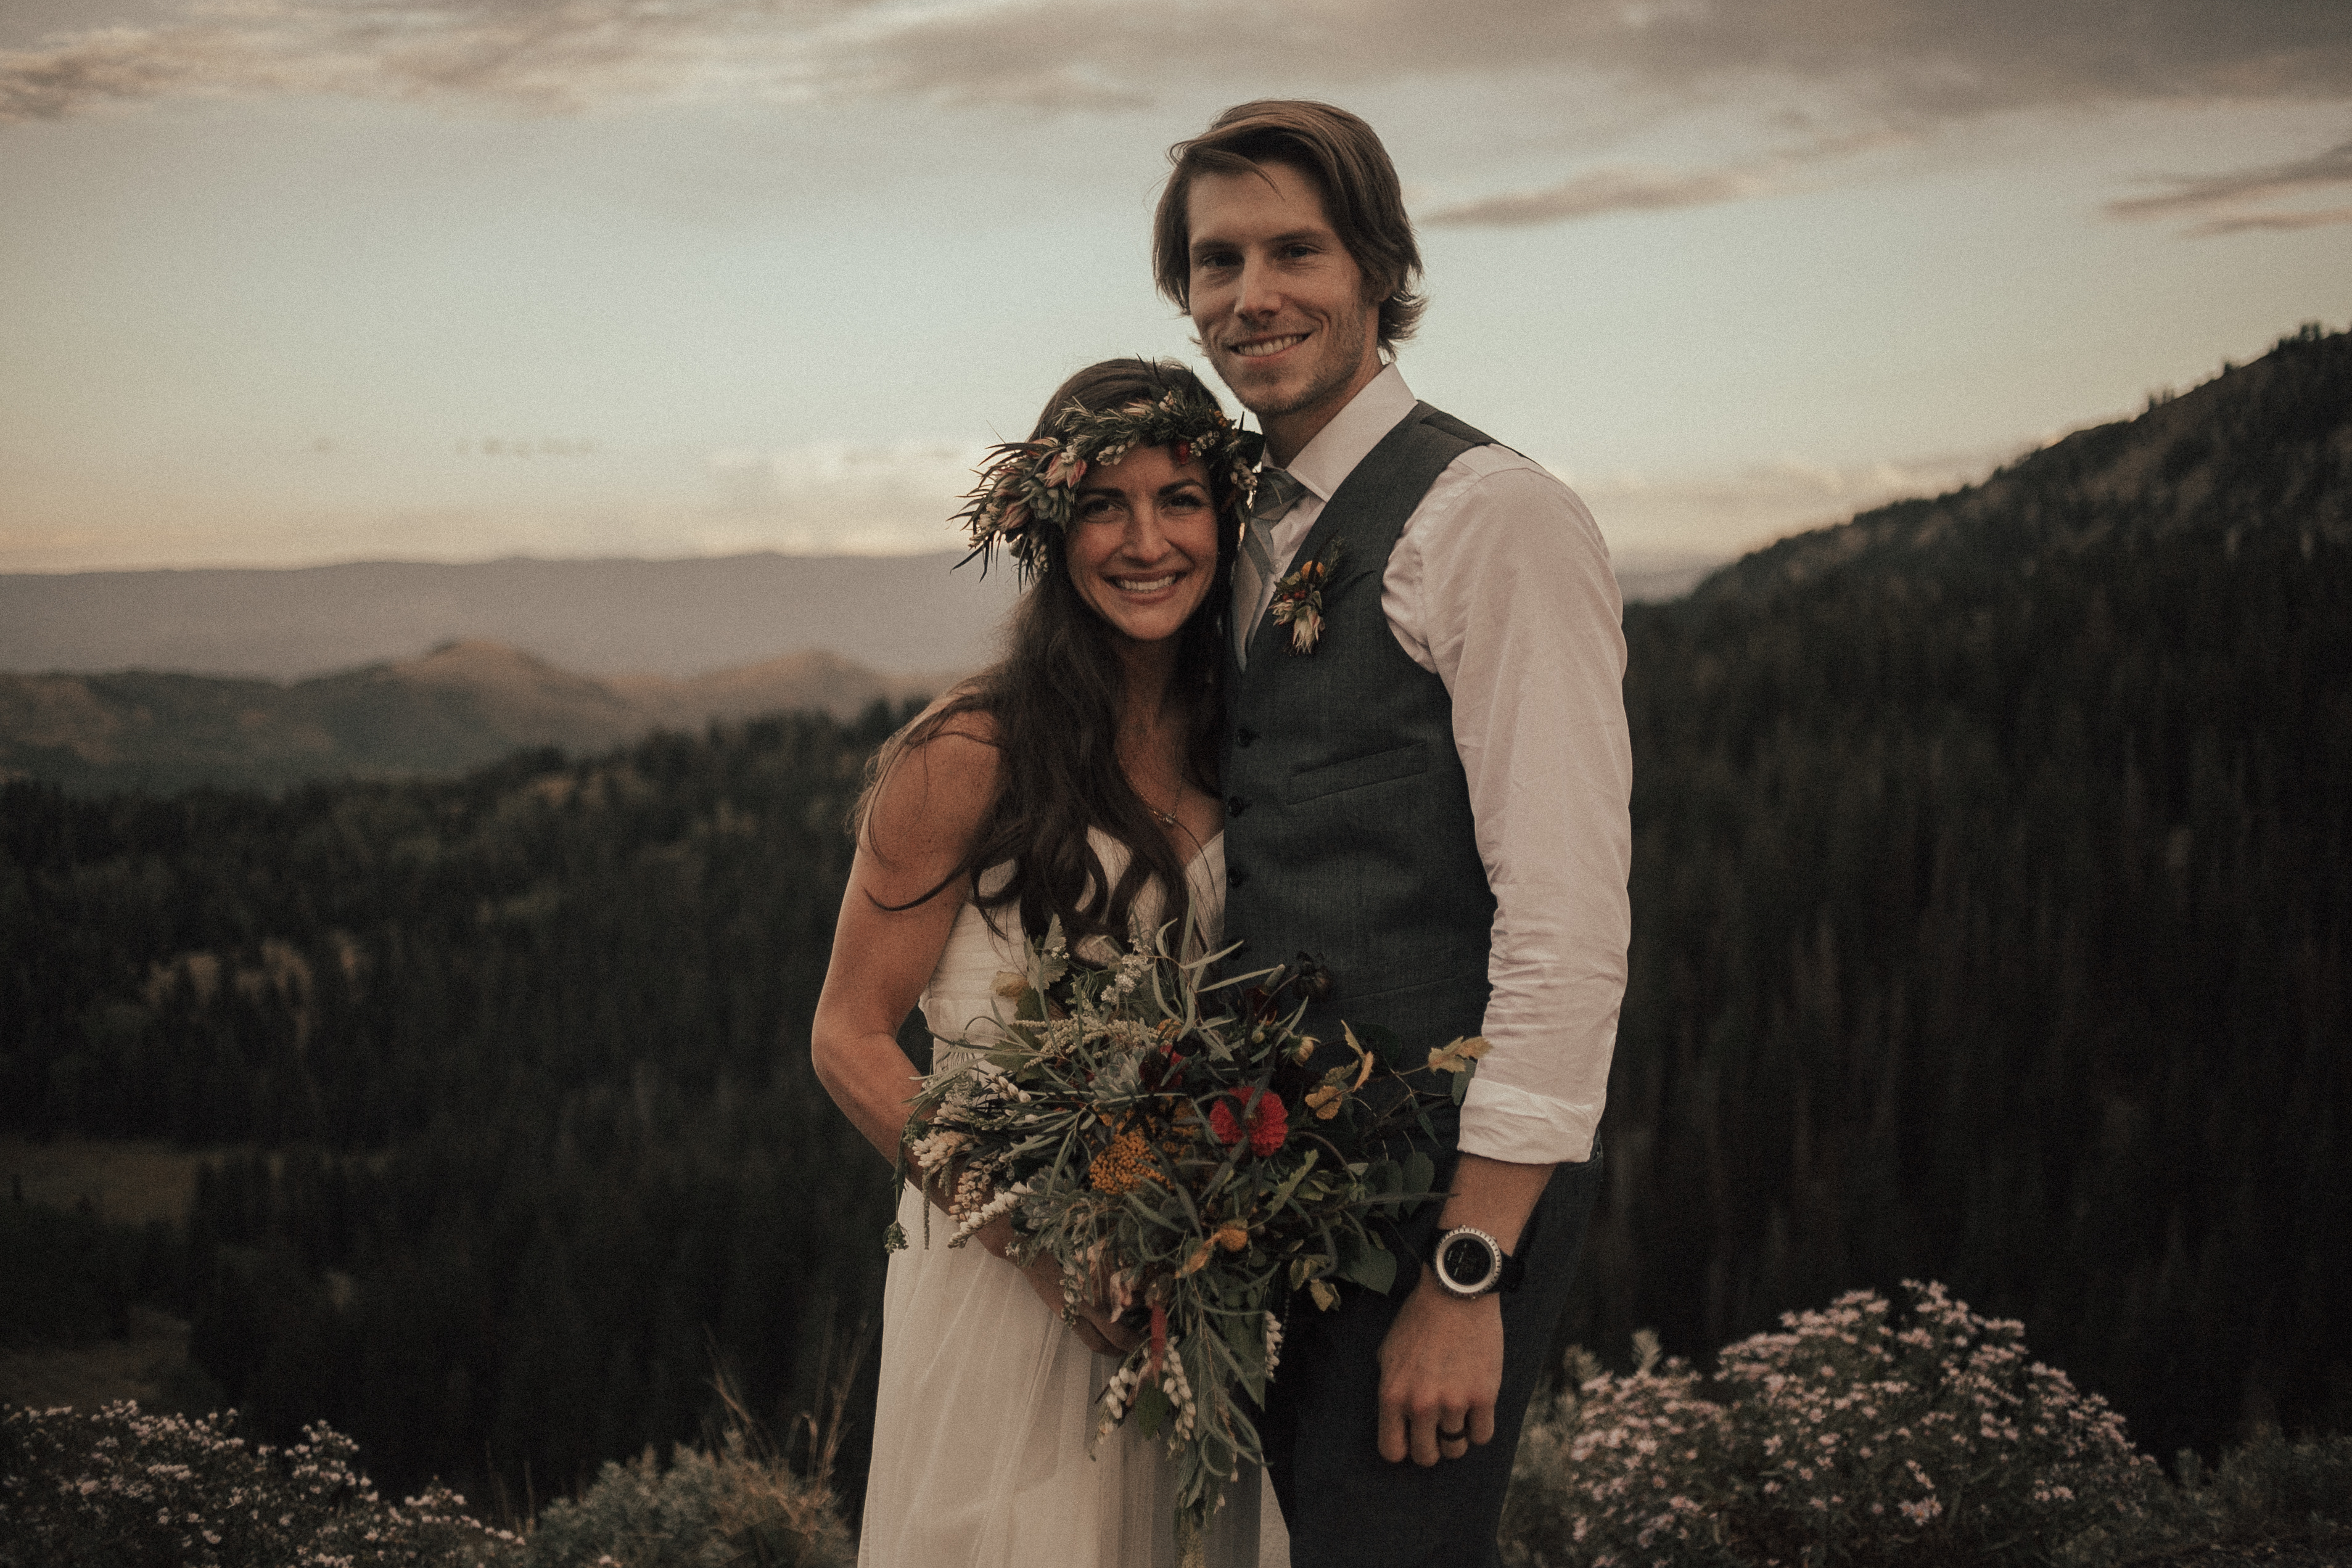 Solitude Mountain Resort Wedding Utah Salt Lake City Green Wedding Shoes Bohemian Bride Moss Flower Shop Tyler Texas Sunset Adventure Elopement Green Wedding Shoes Aspen Forest Ceremony Venue